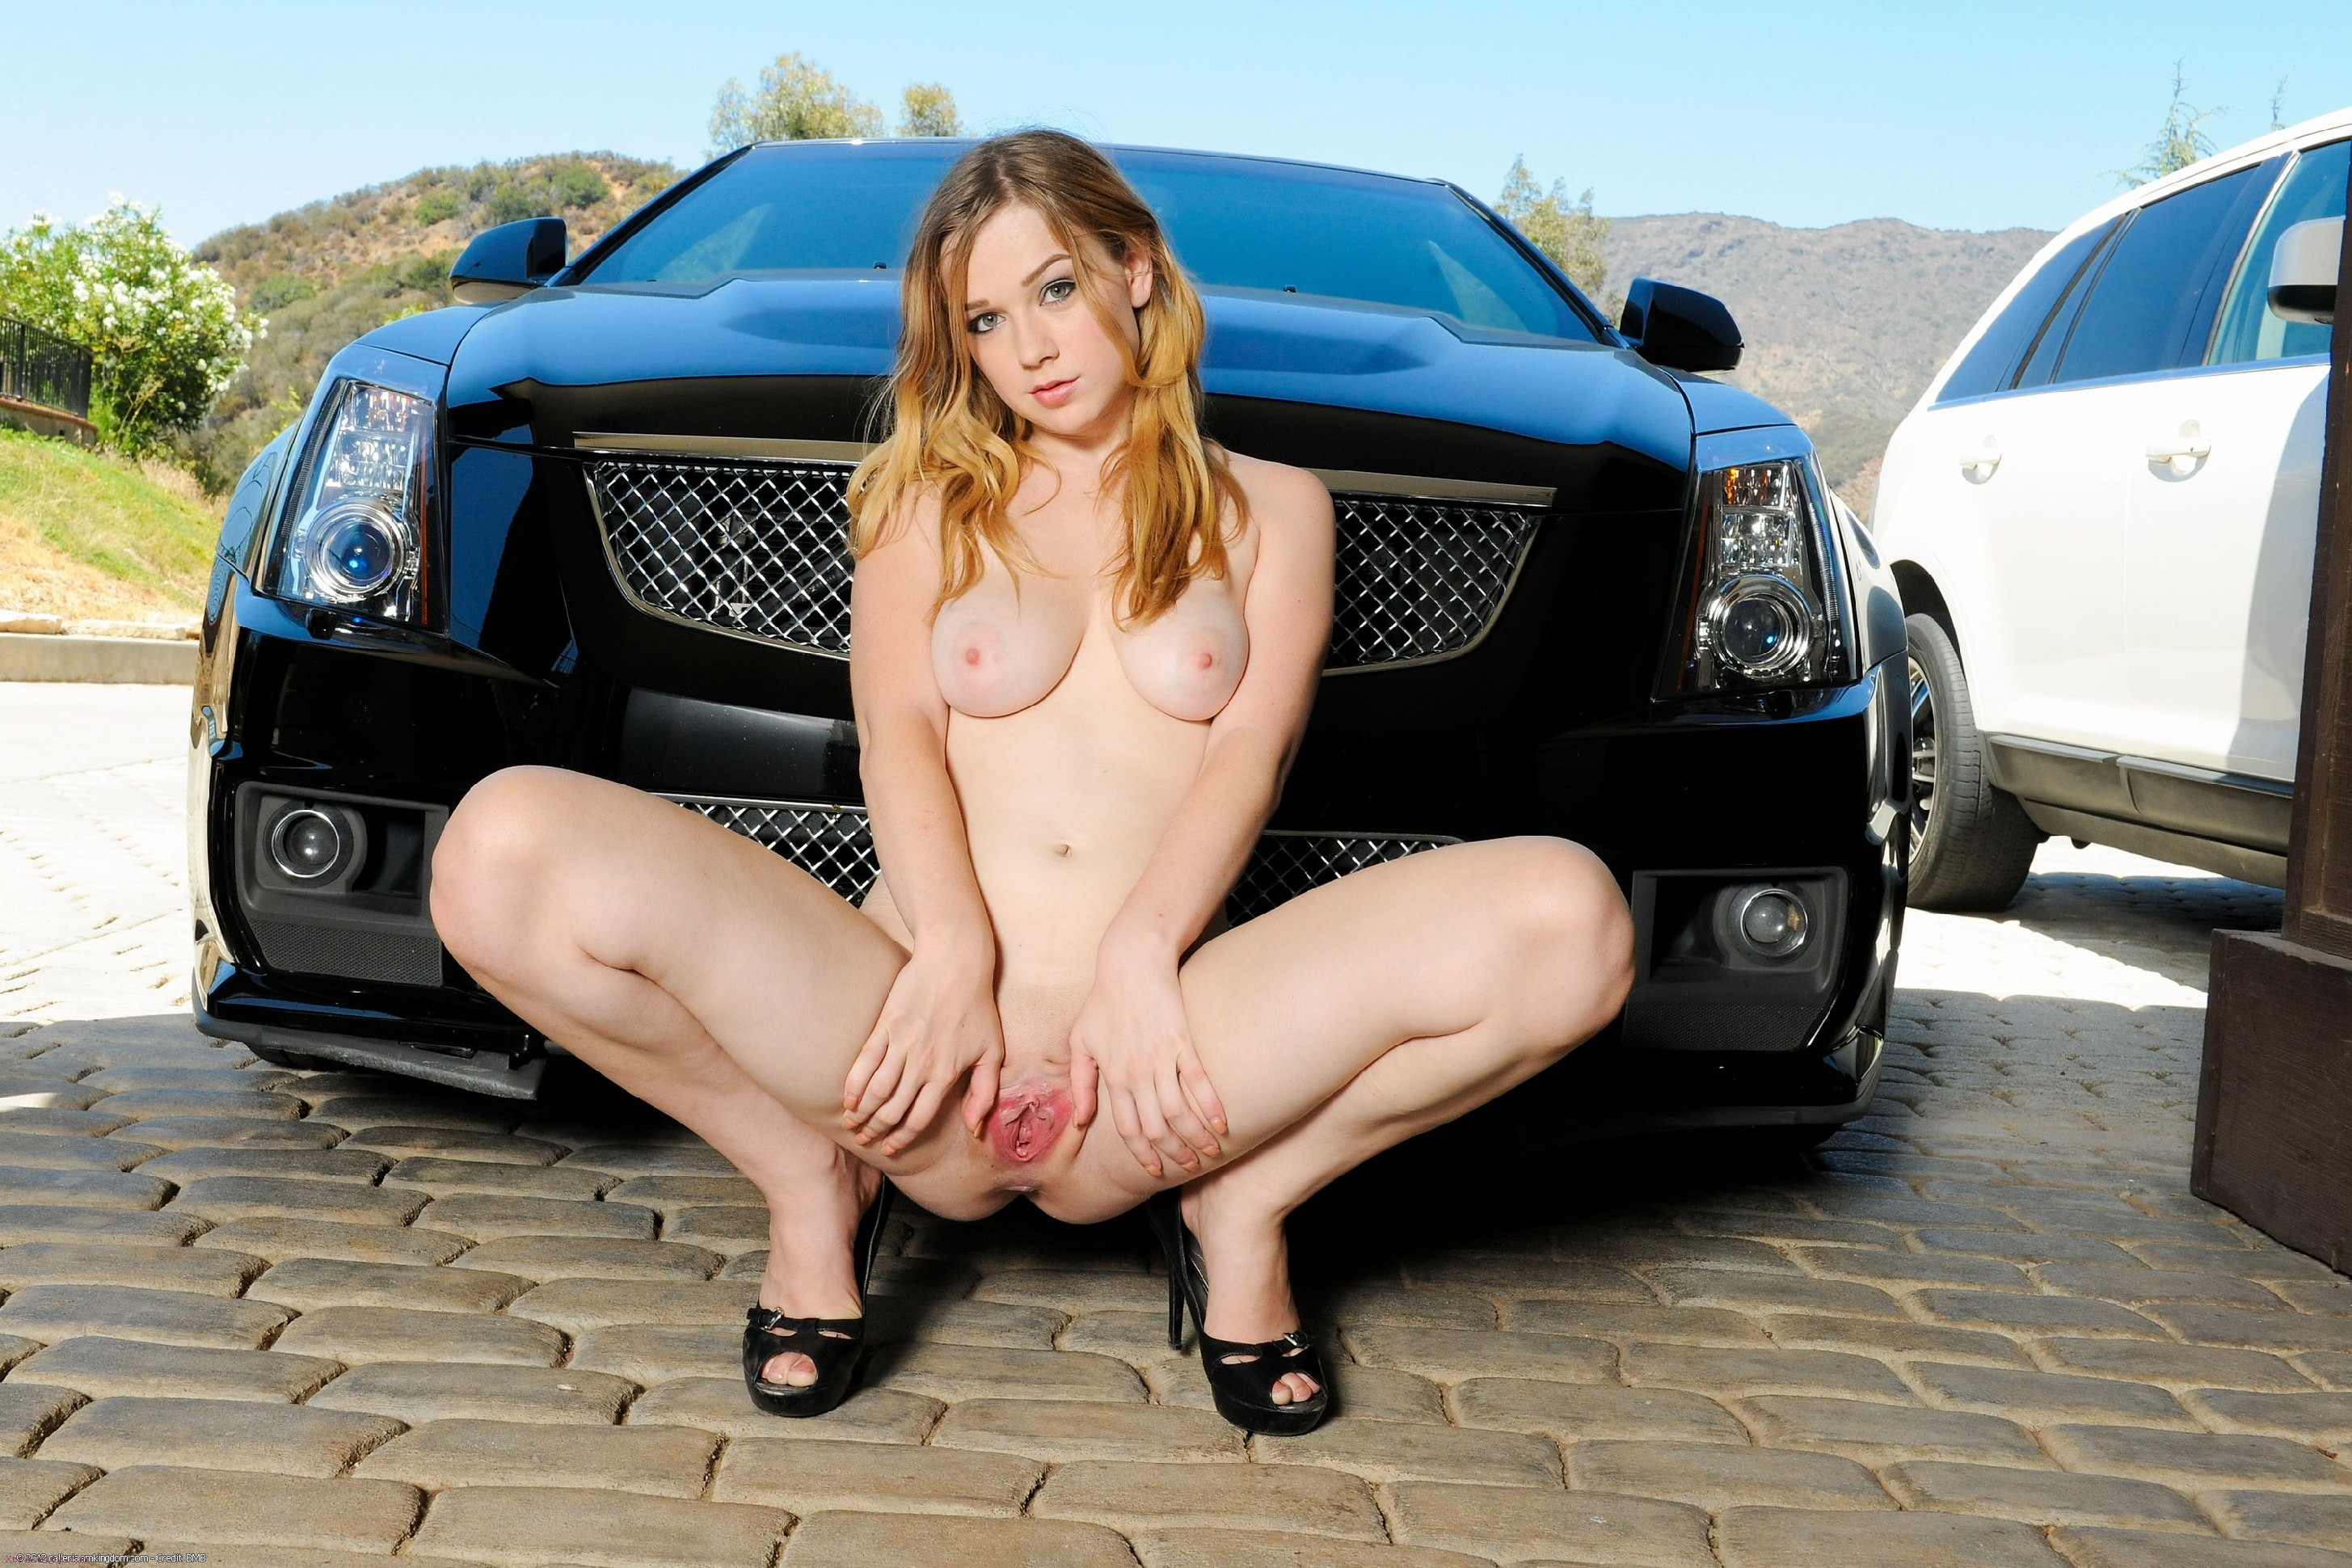 Women naked and car